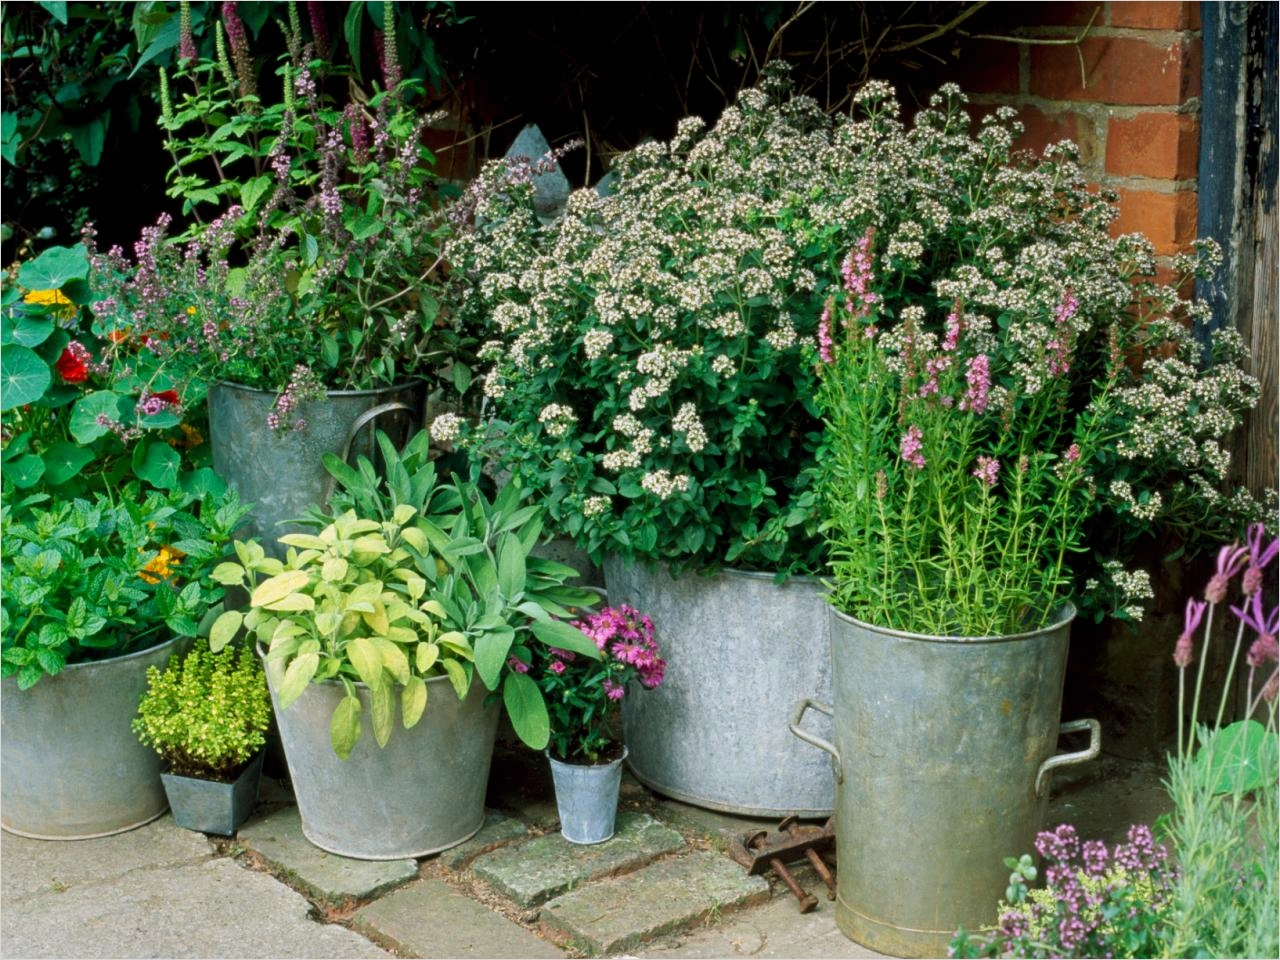 Garden Ideas for Small Spaces 97 Container and Small Space Gardening Diy Garden Projects 7